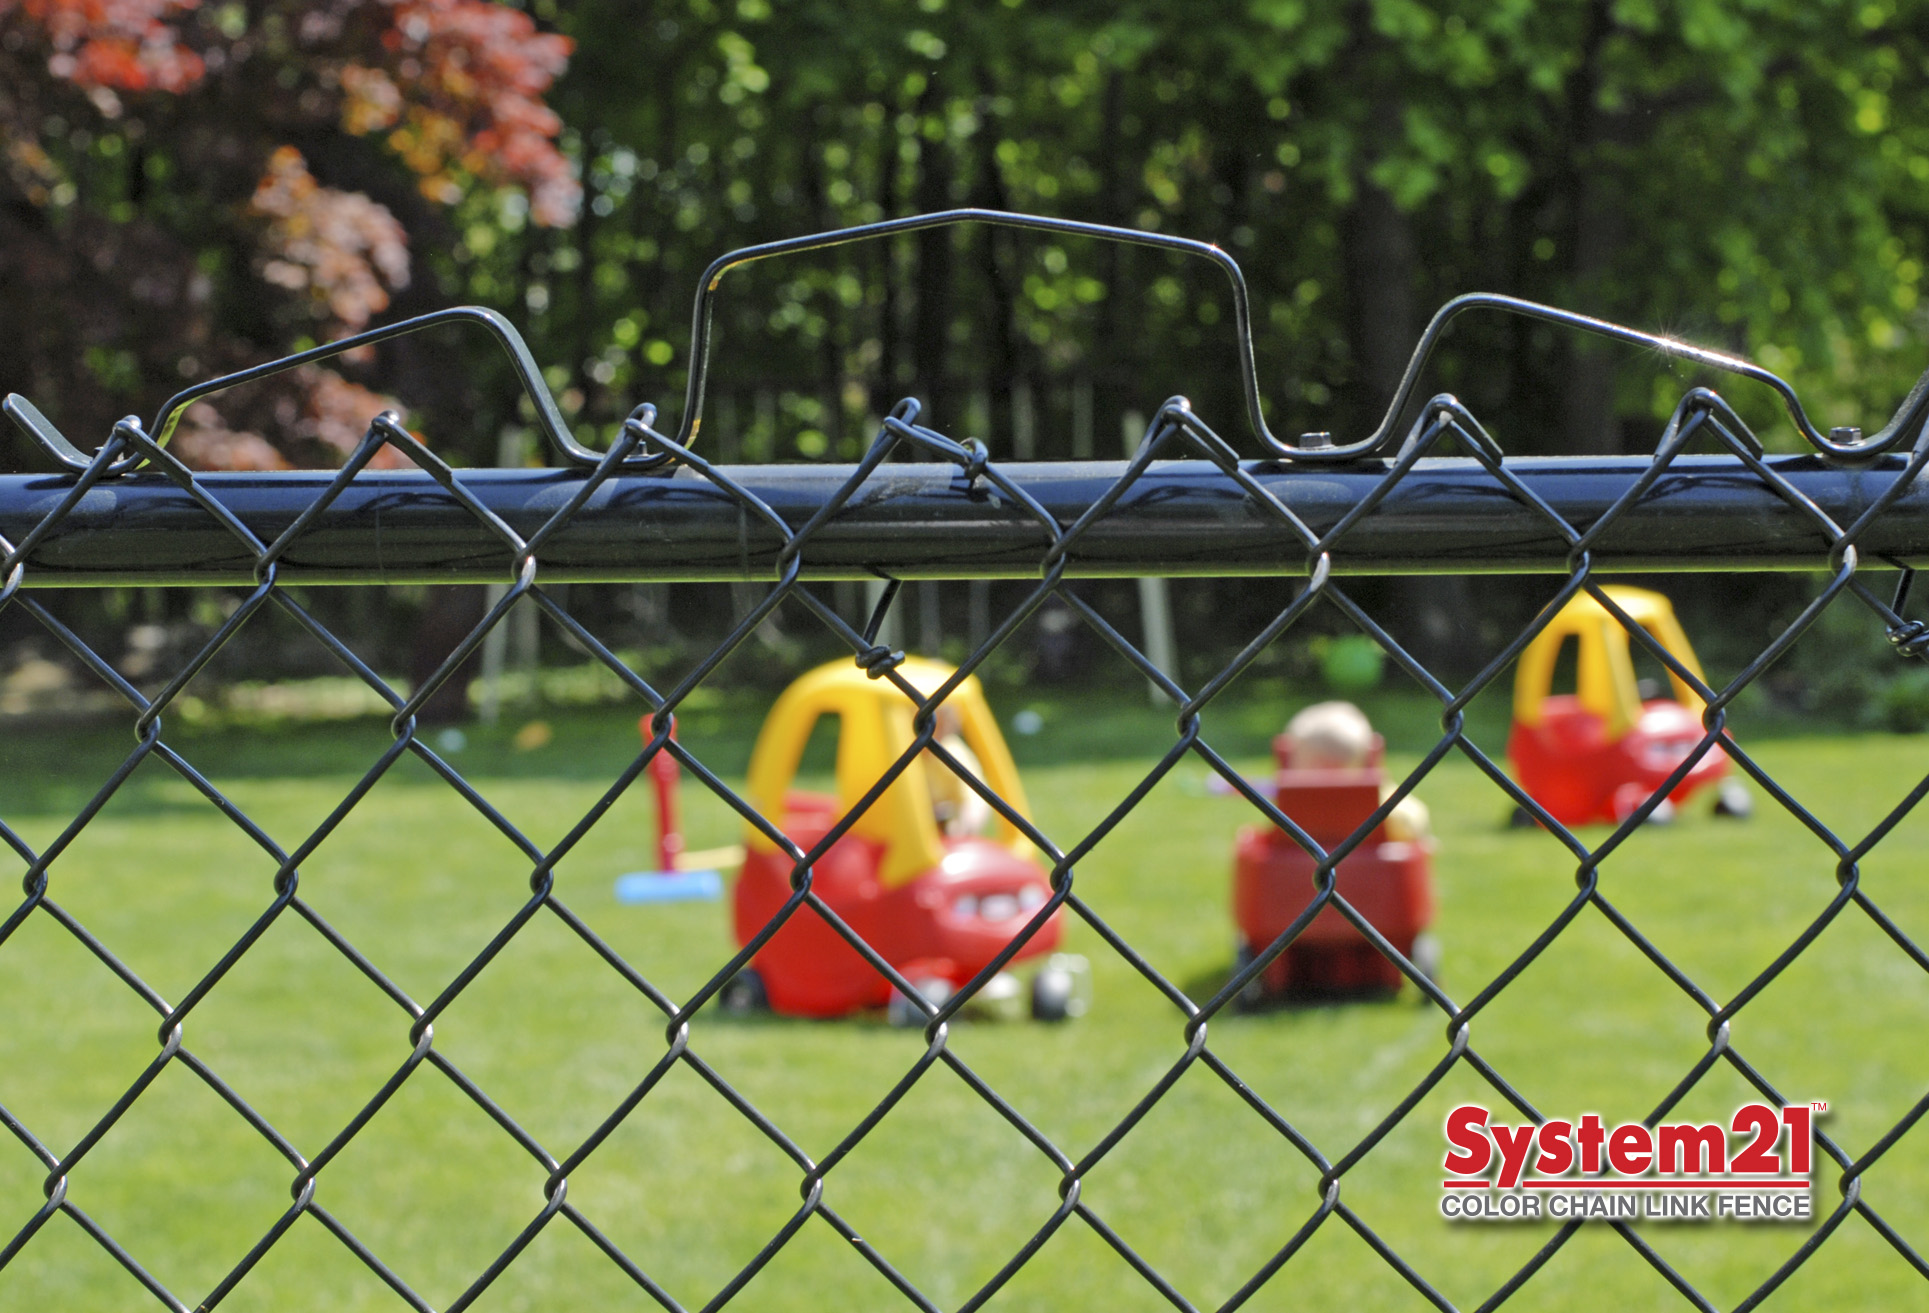 System21 Vinyl Coated Chain Link Fence